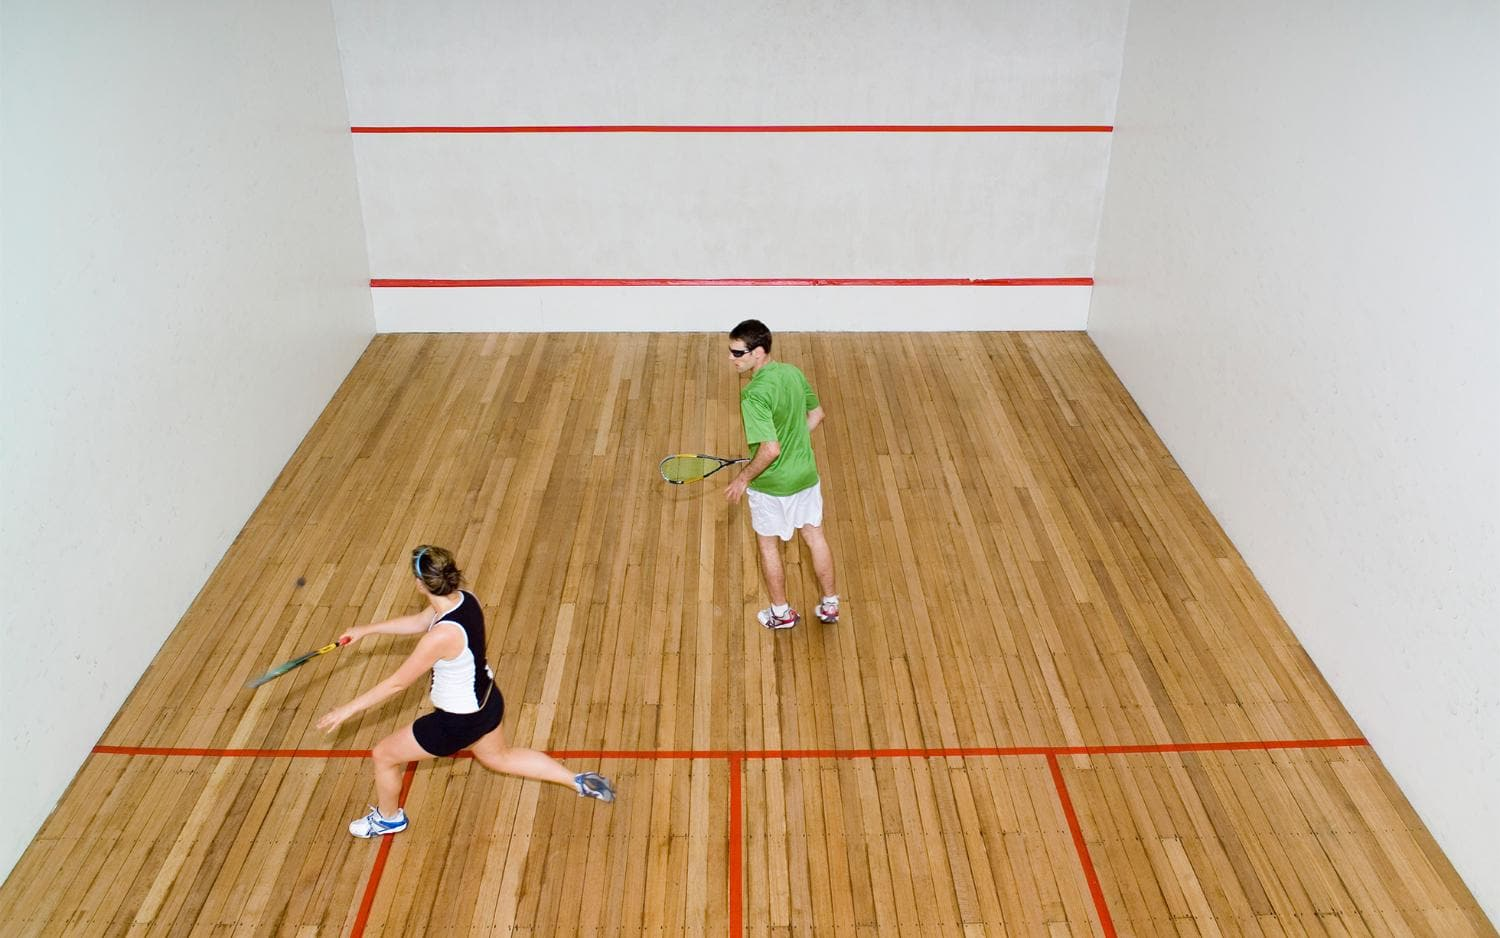 how often should you play squash